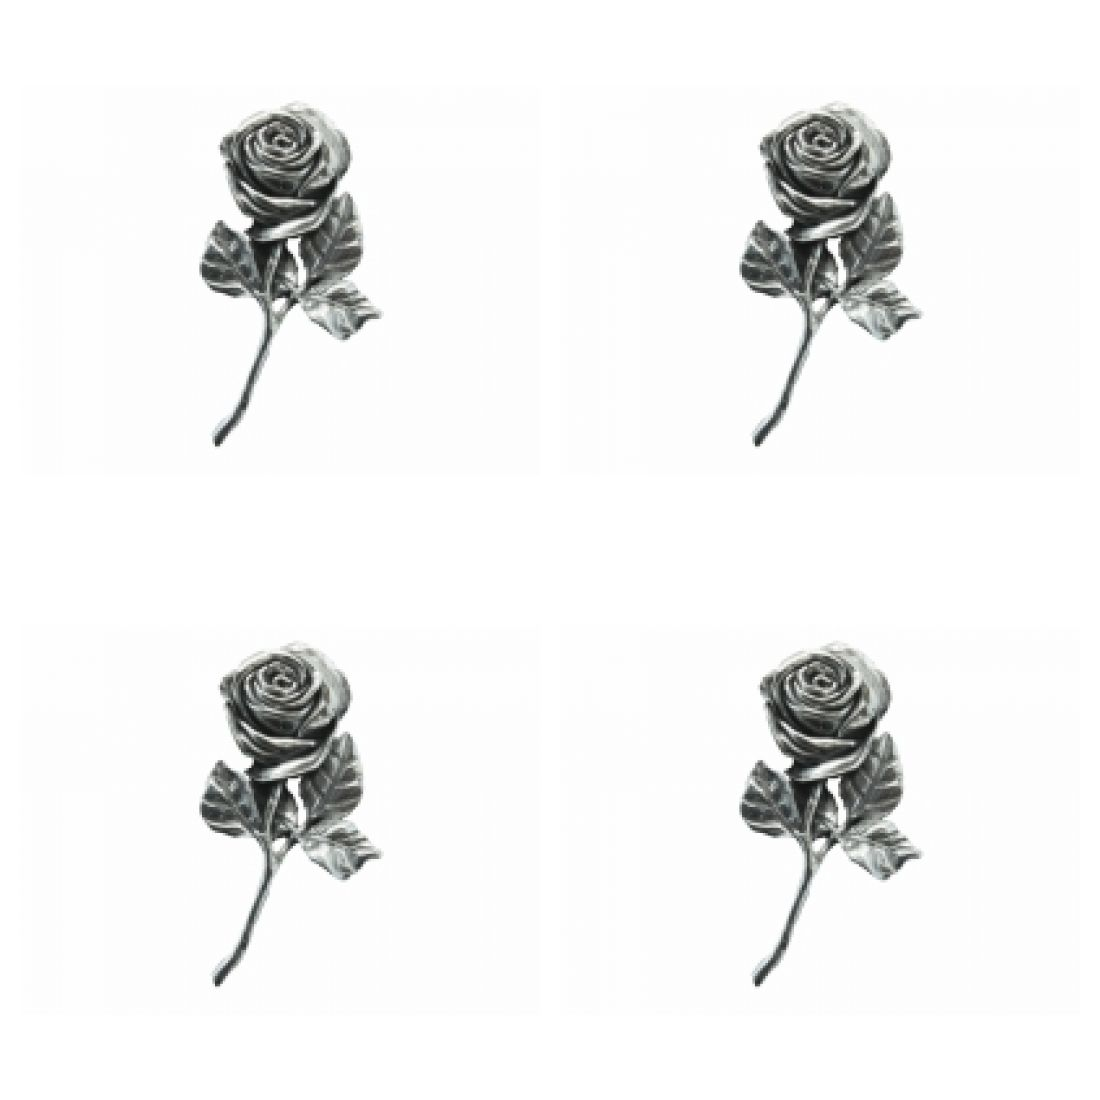 4 x Pin Anstecker Badge Rose Abmessung 4,8x2,7cm